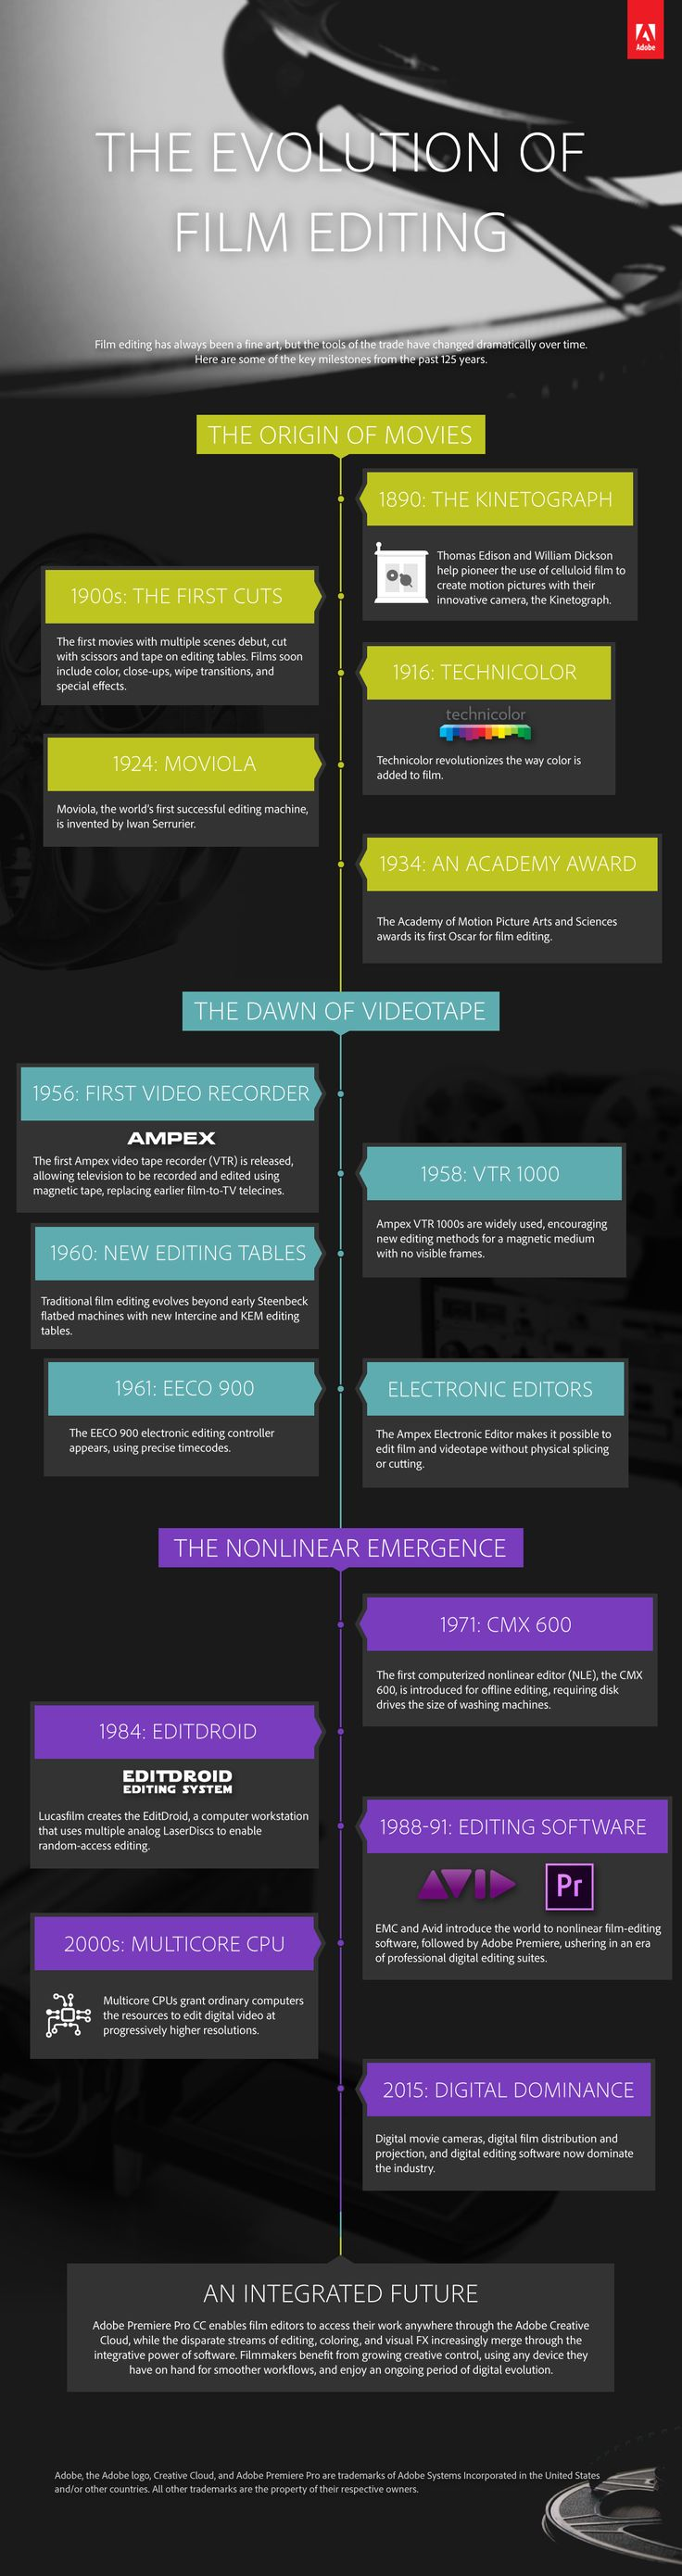 See a Visual Timeline Highlighting the Evolution of Film Editing | Creative Planet Network